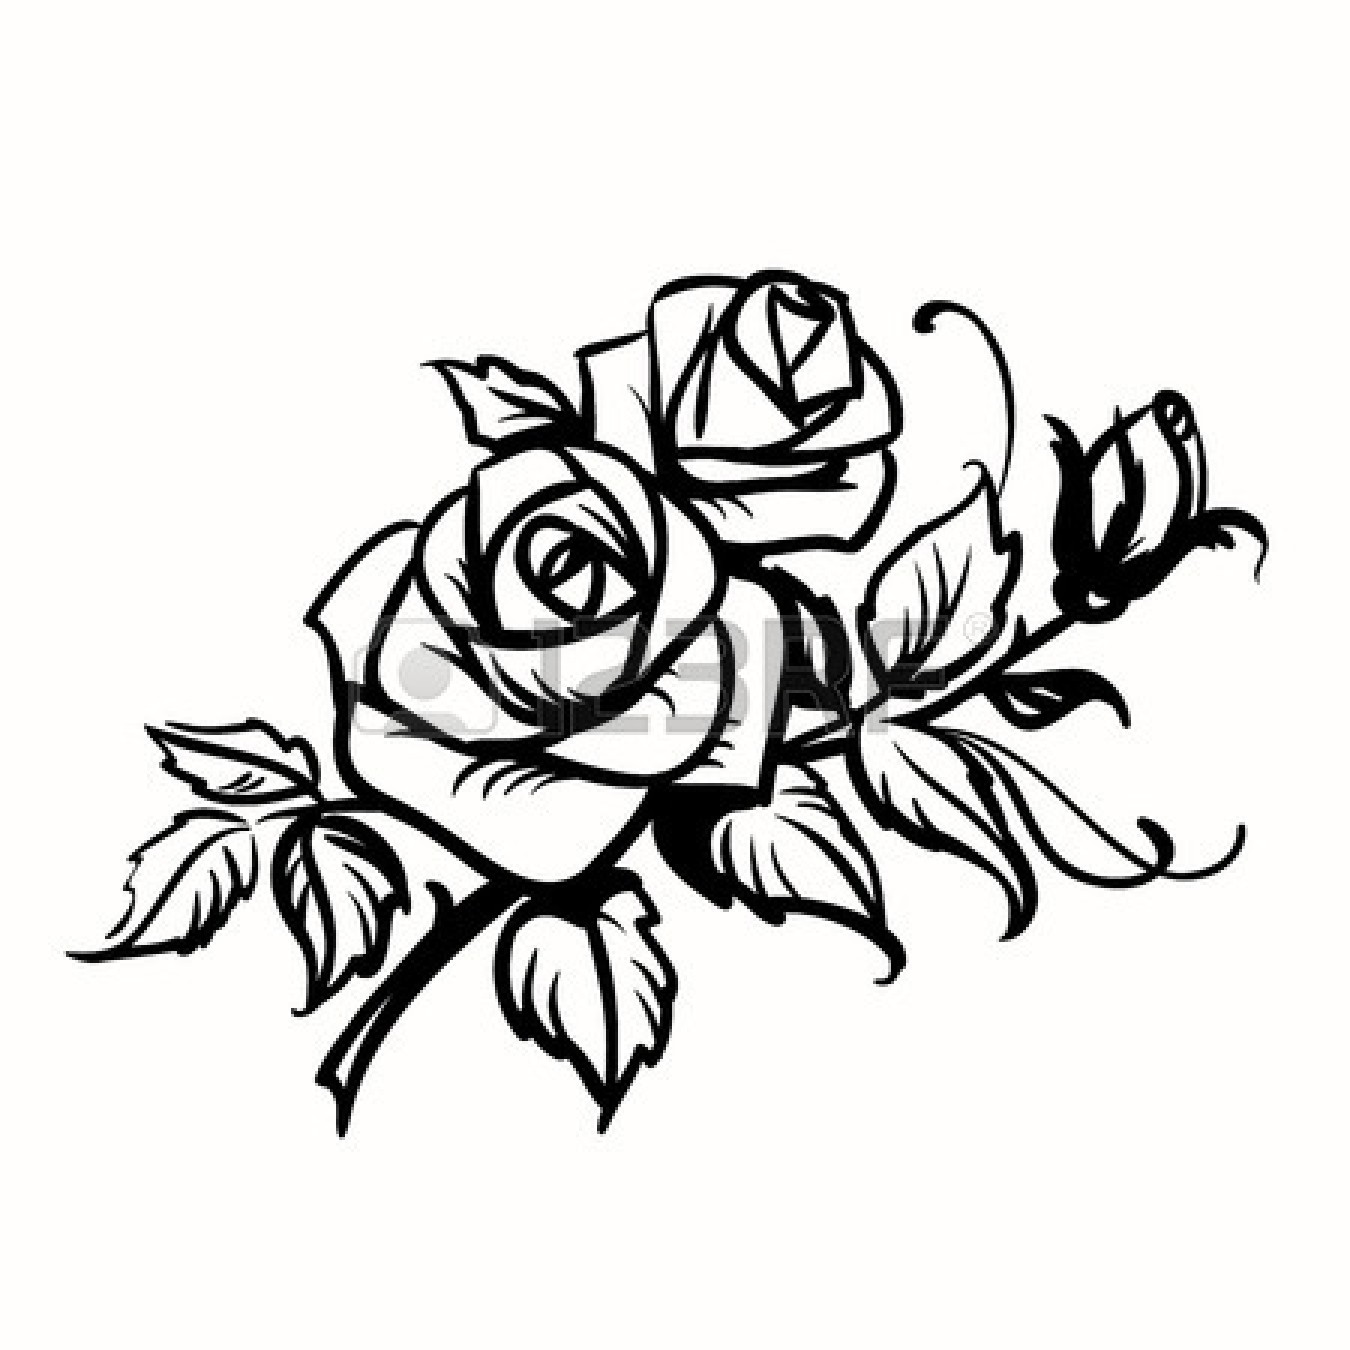 Rose black and white outline clipart panda free clipart images rose20black20and20white20outline mightylinksfo Gallery